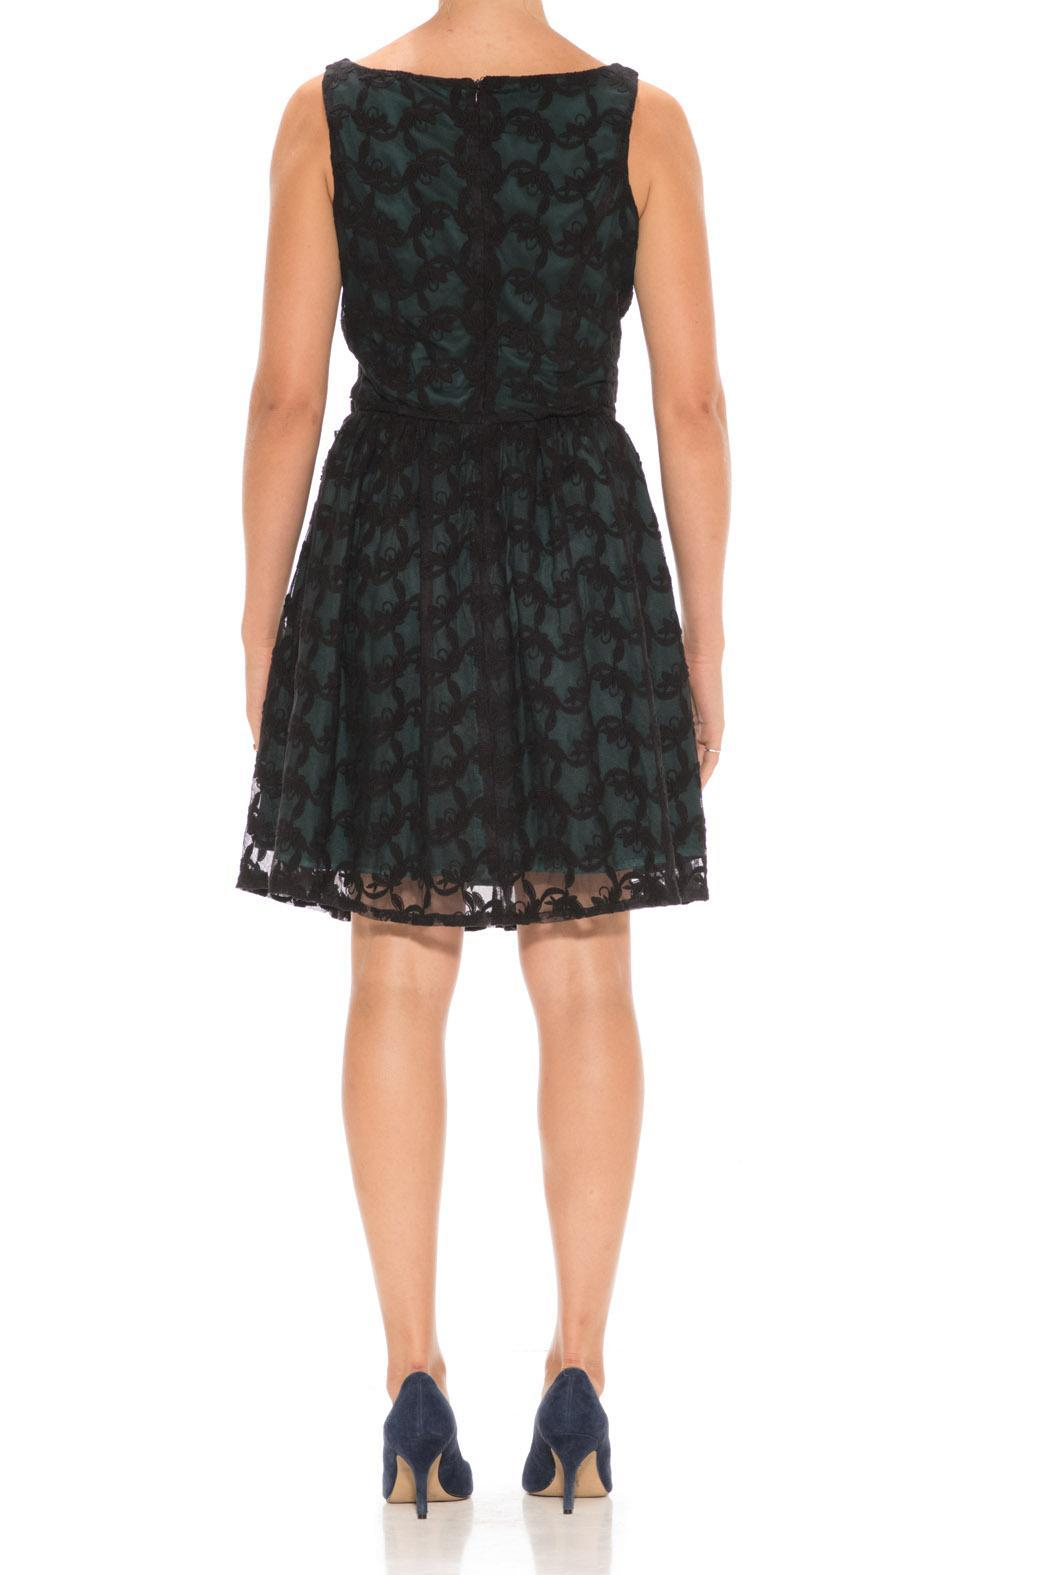 Nick & Mo Lacy Party Dress - Front Full Image